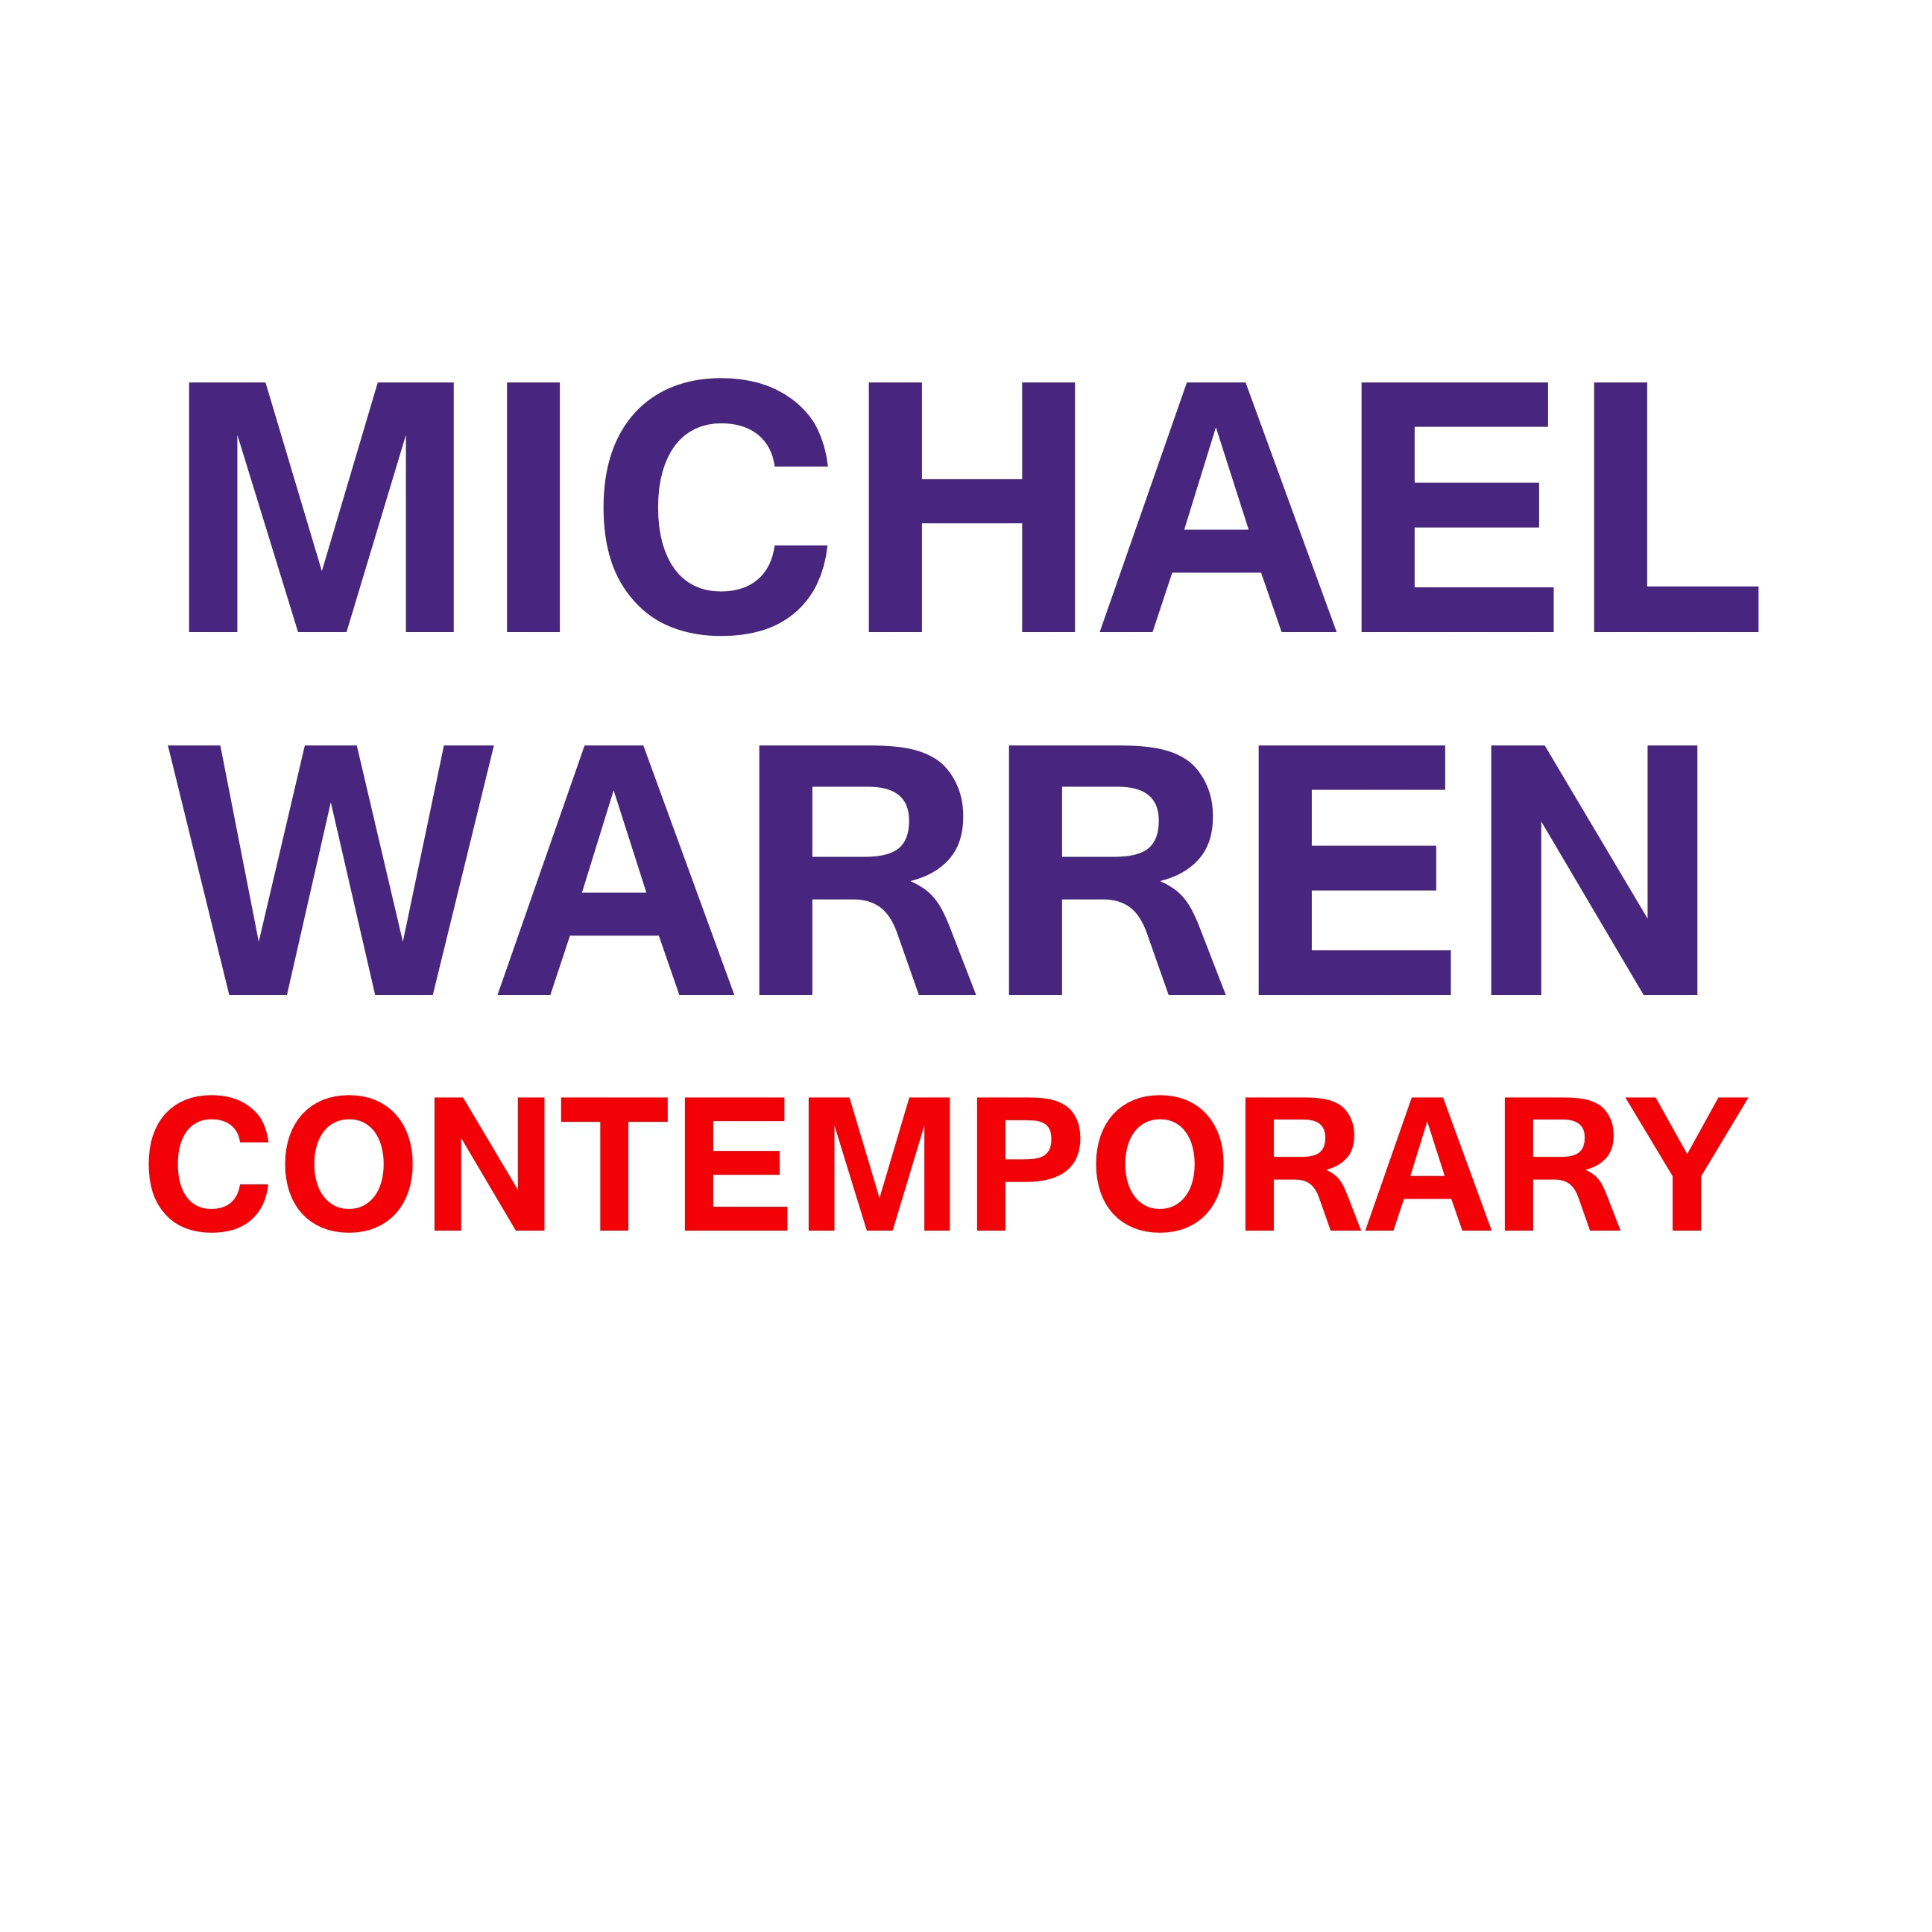 Michael Warren Contemporary